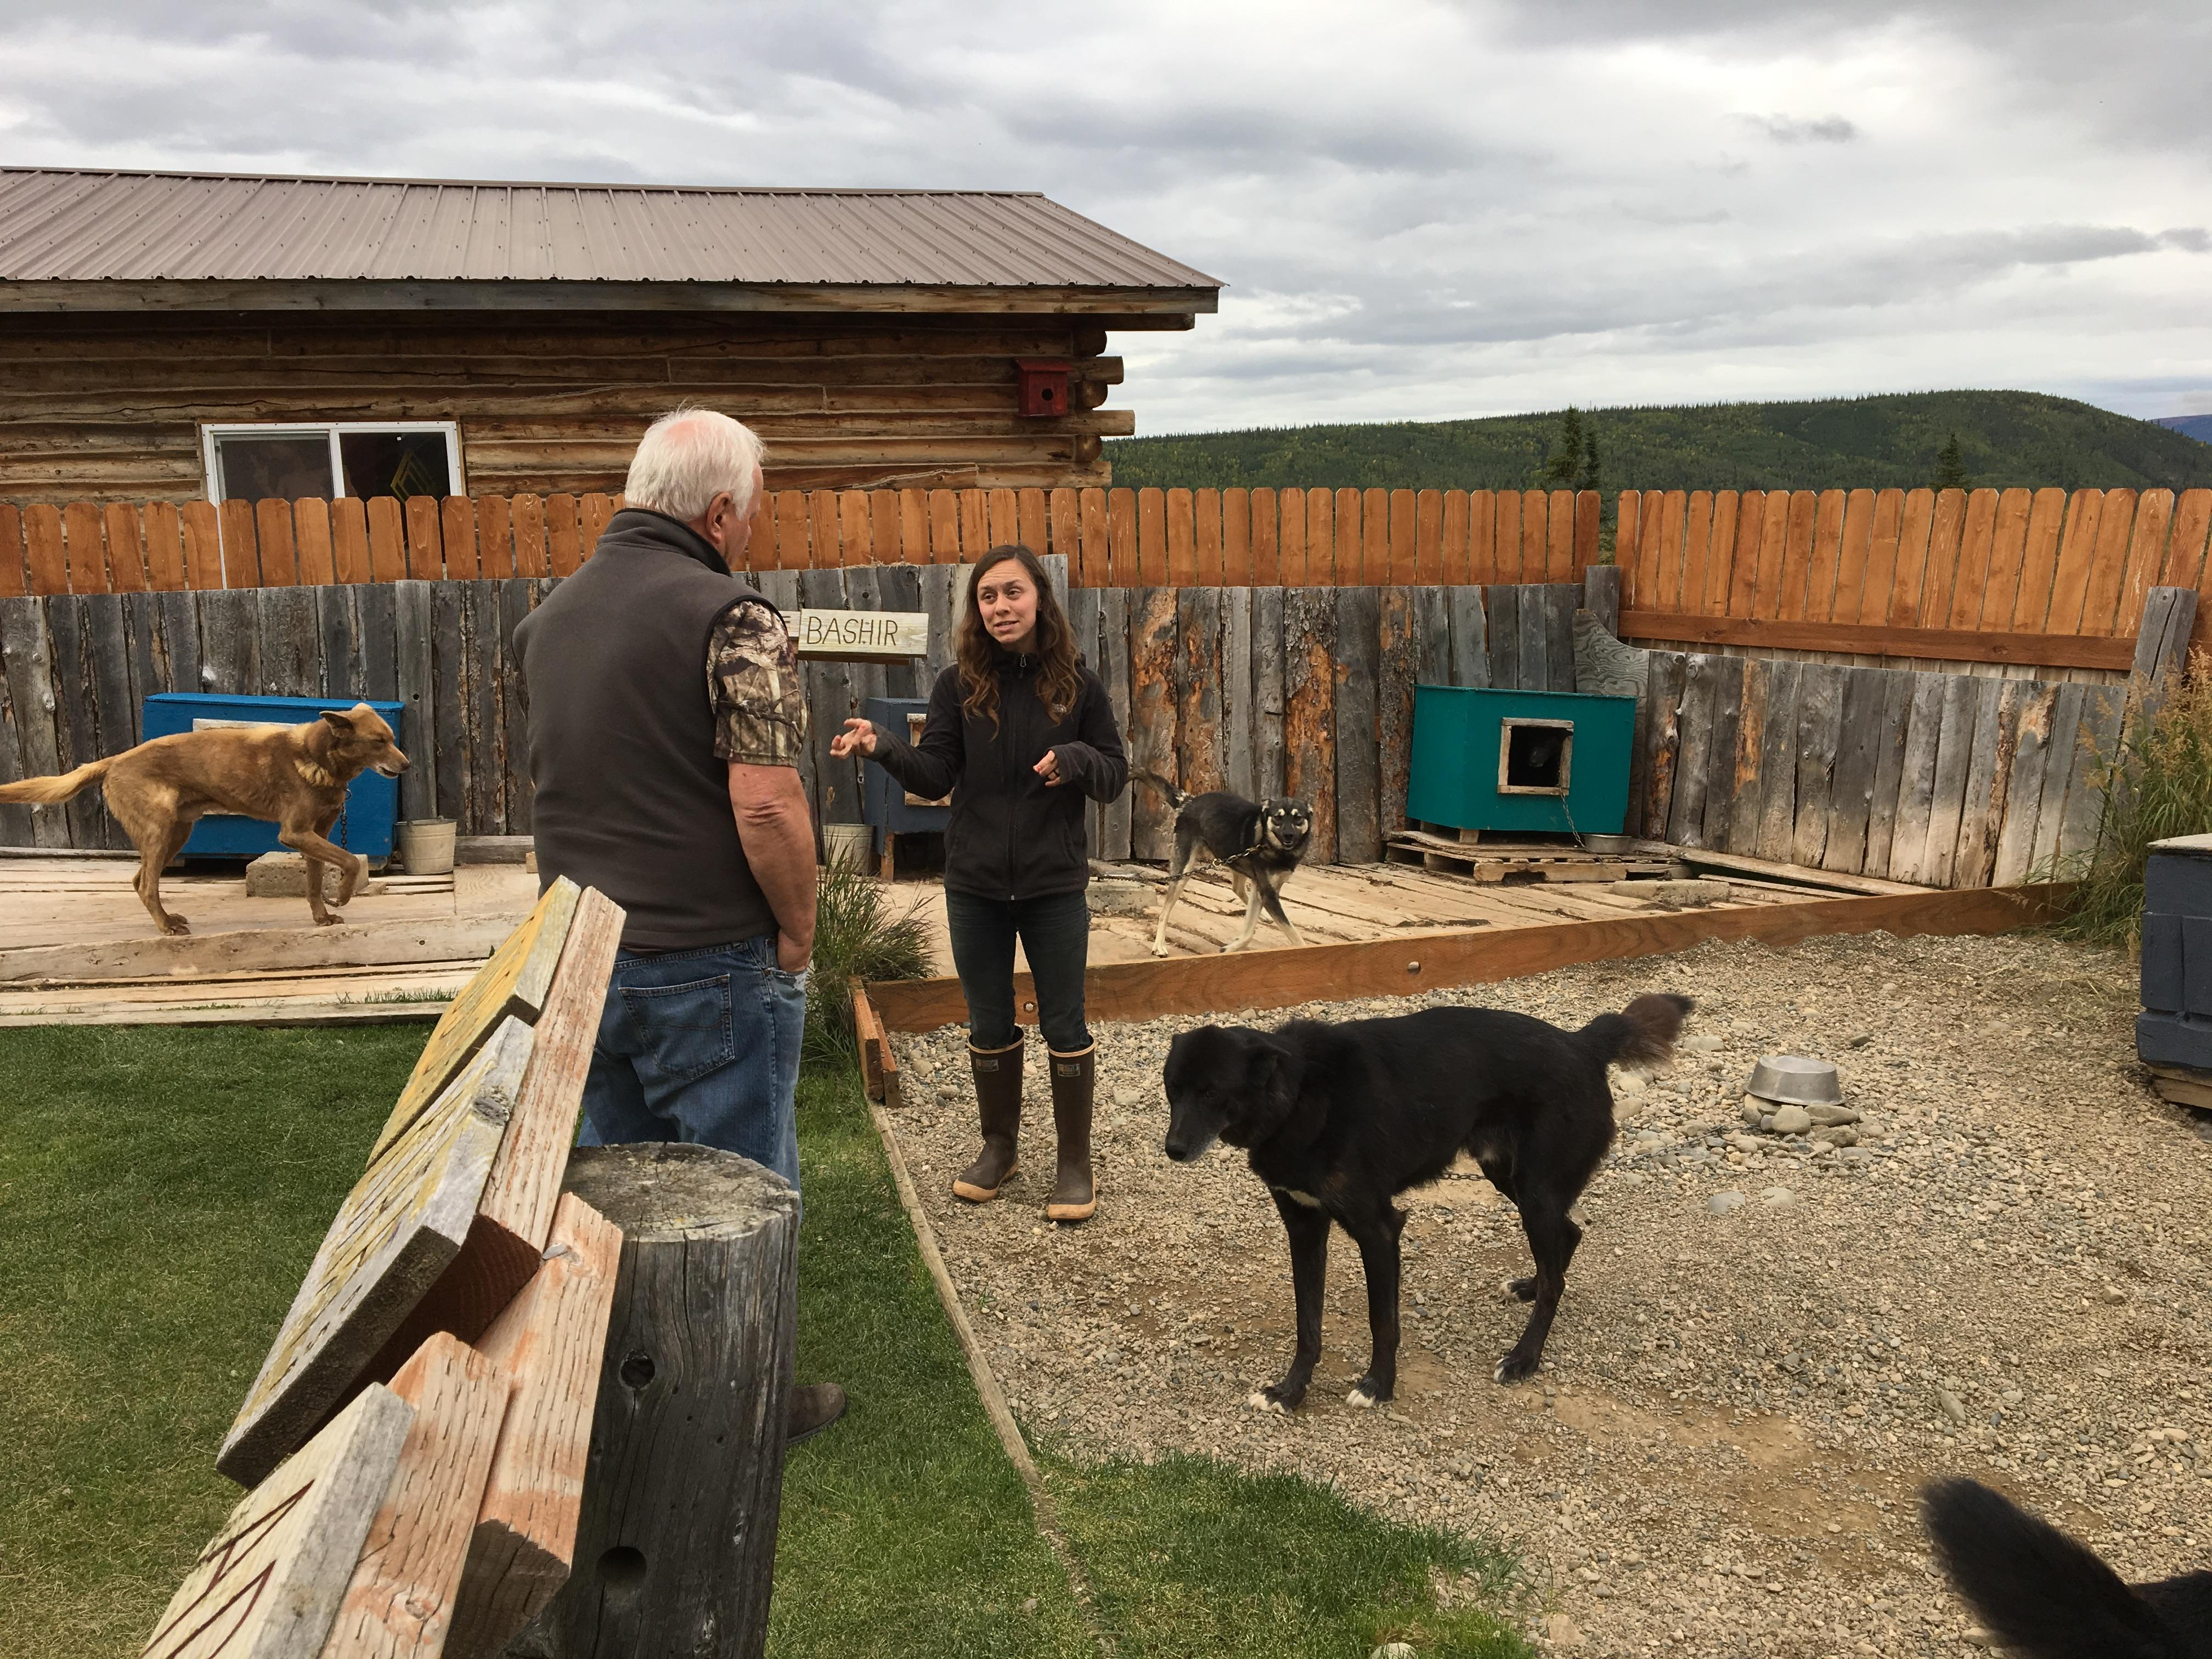 A visit with the sled dogs.